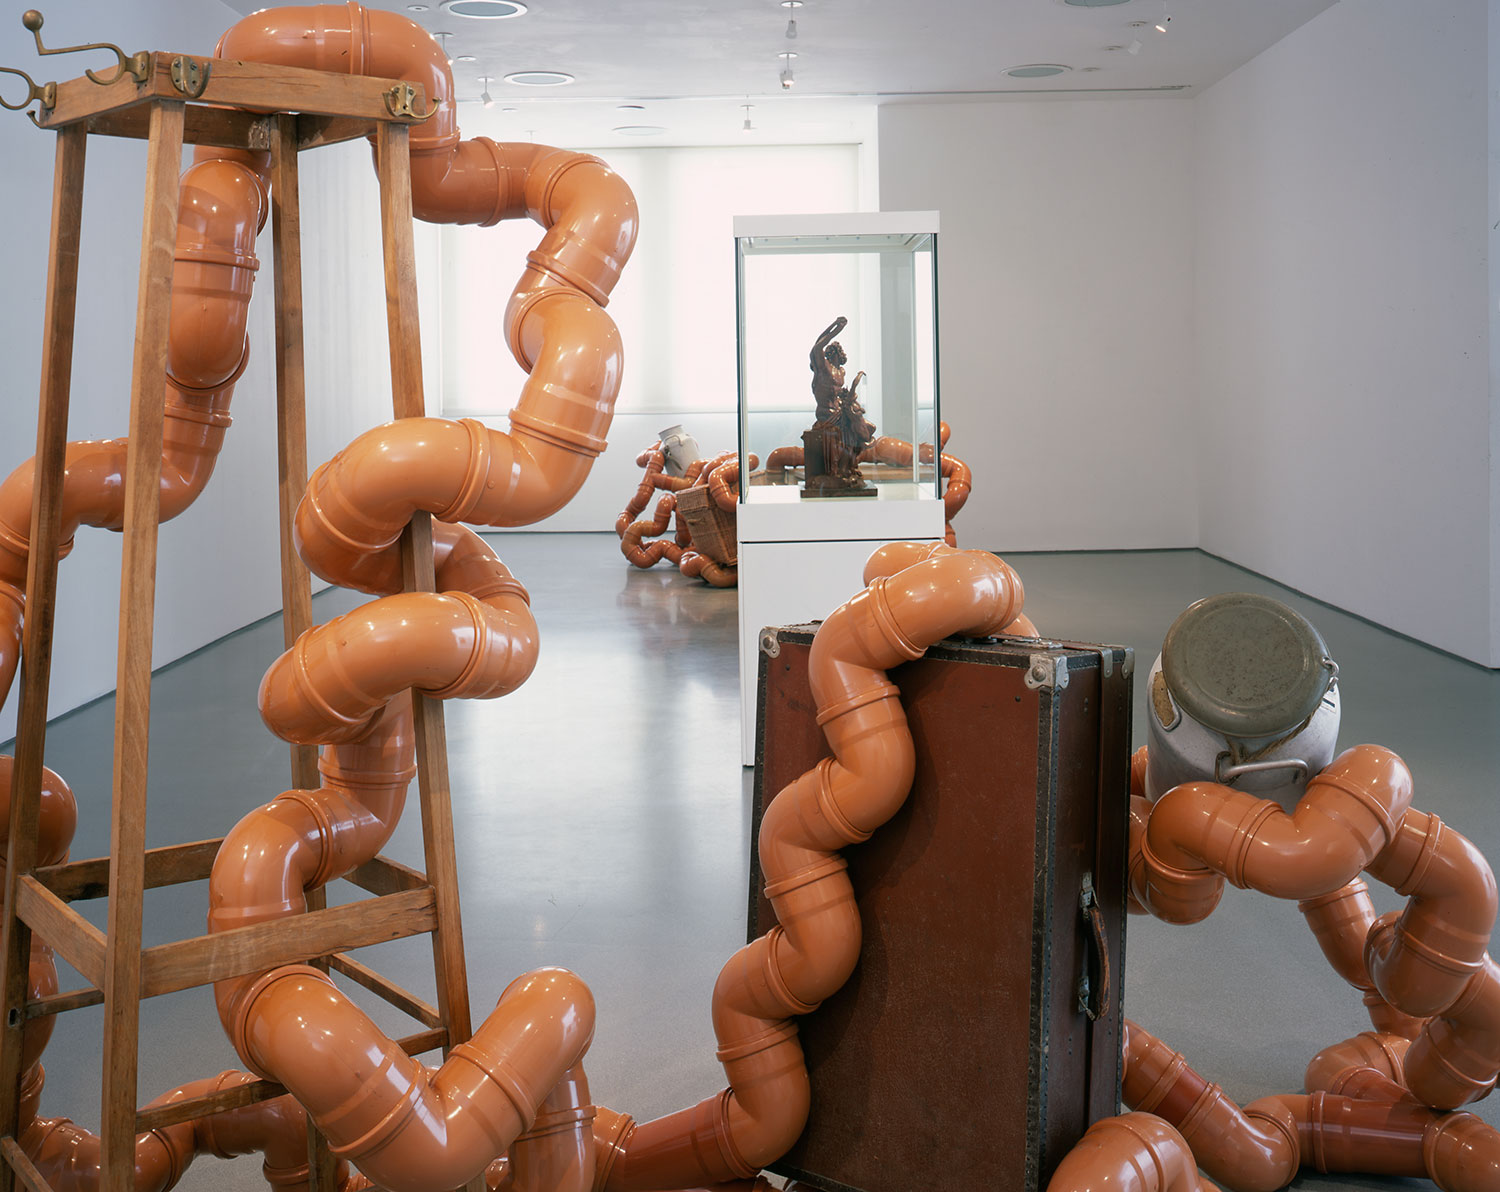 Installation view of Towards a New Laocoon 4